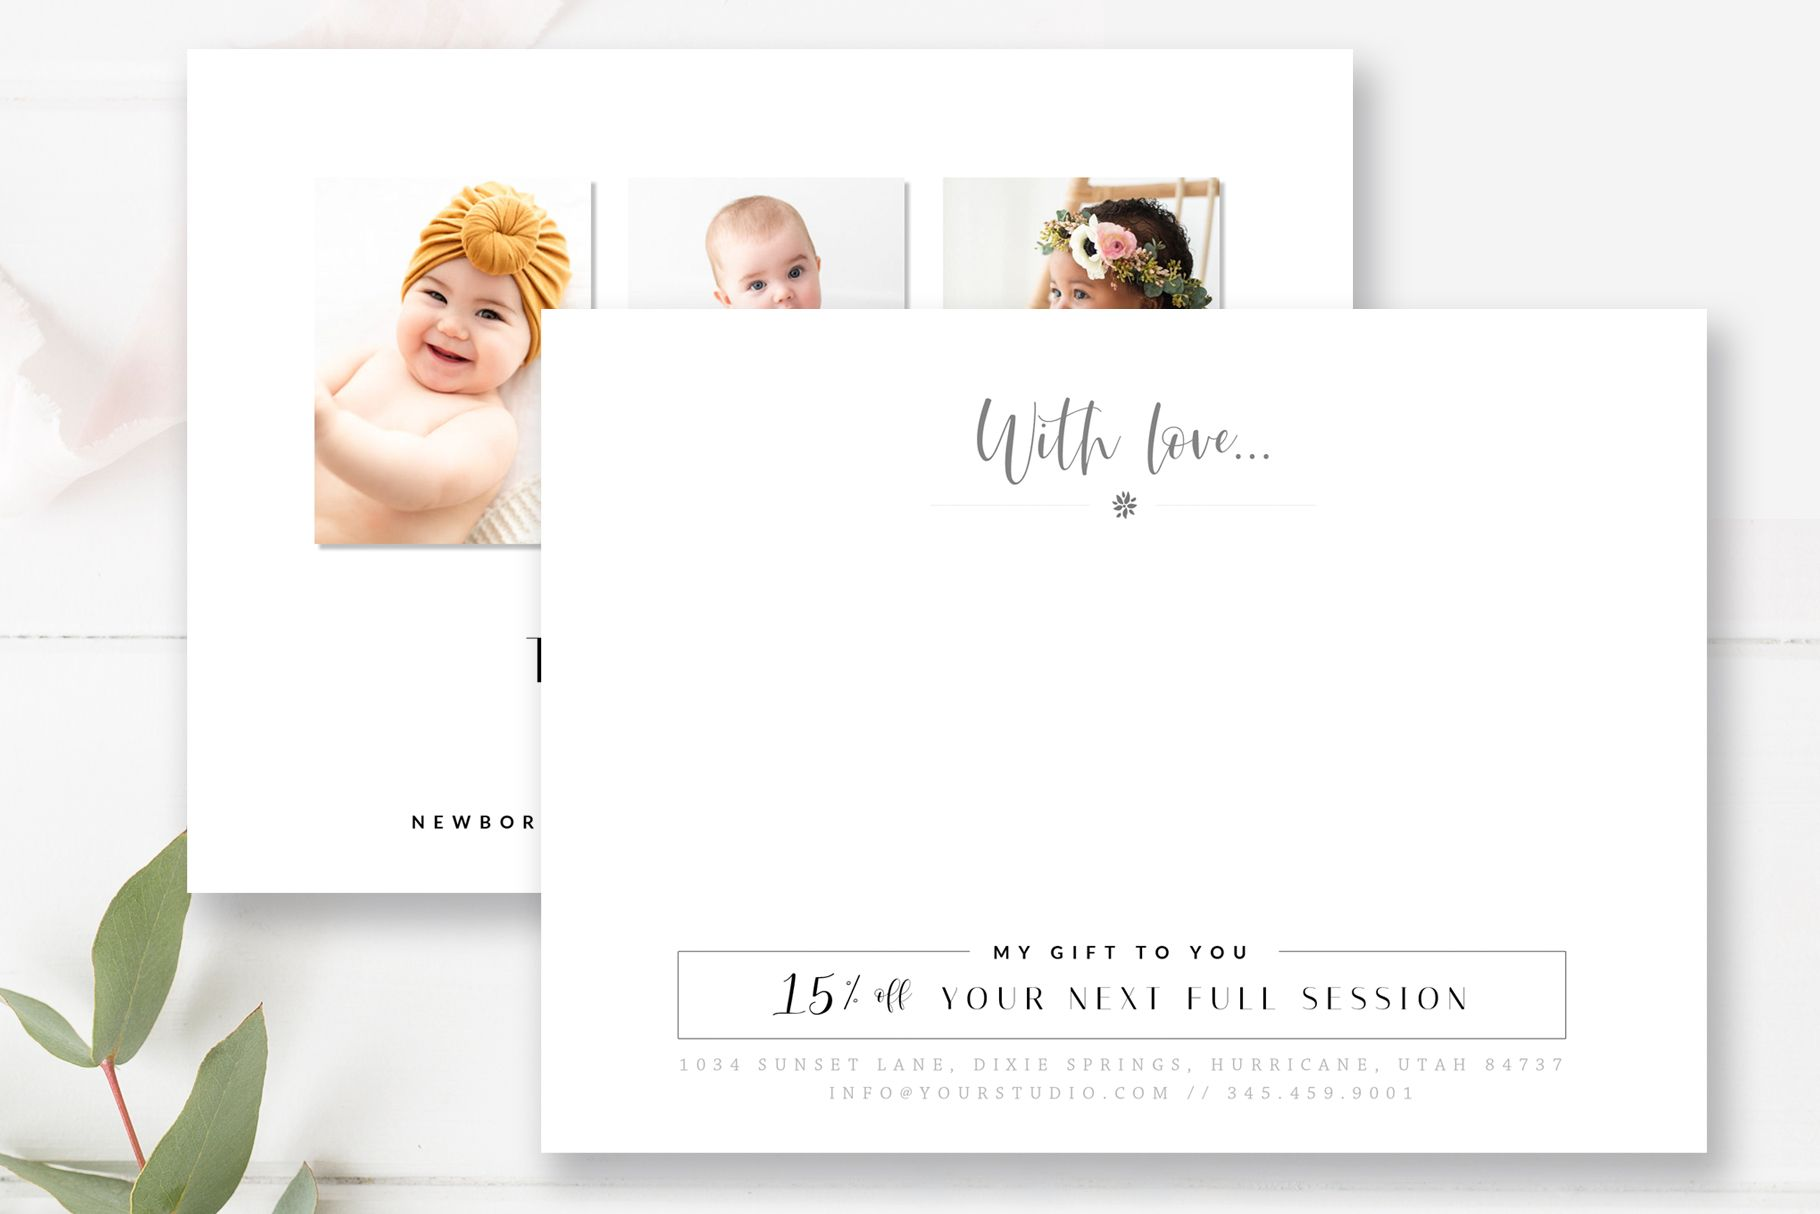 Send Your Client A Thank You Card And Add A Personal Touch To Your Branding Photoshop Template Design Thank You Card Template Photography Marketing Templates